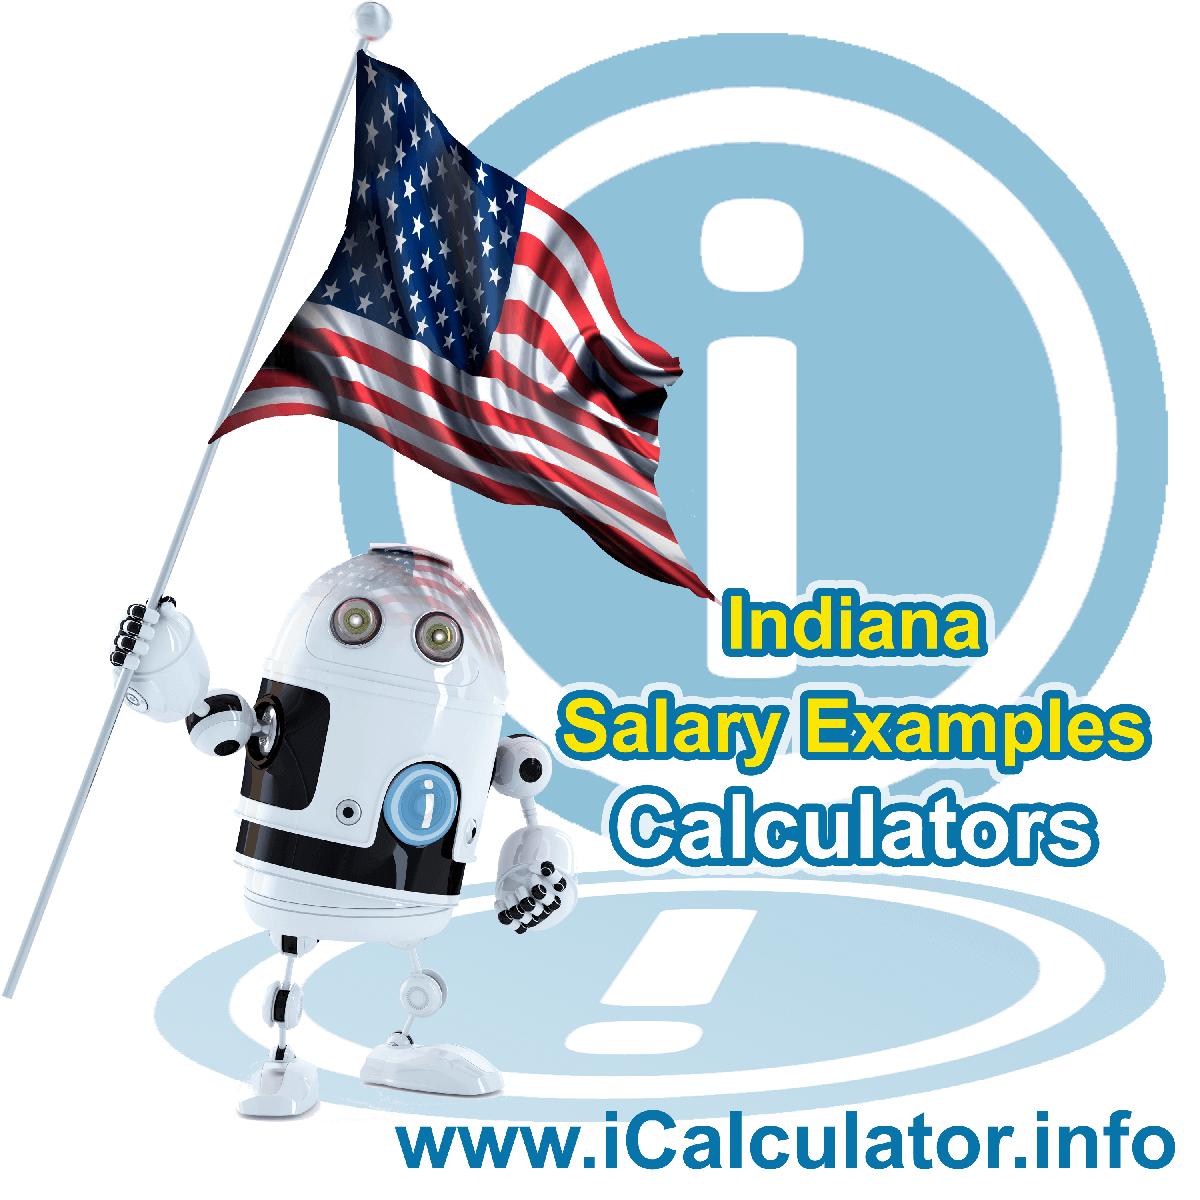 Indiana Salary Example for $140.00 in 2020 | iCalculator | $140.00 salary example for employee and employer paying Indiana State tincome taxes. Detailed salary after tax calculation including Indiana State Tax, Federal State Tax, Medicare Deductions, Social Security, Capital Gains and other income tax and salary deductions complete with supporting Indiana state tax tables